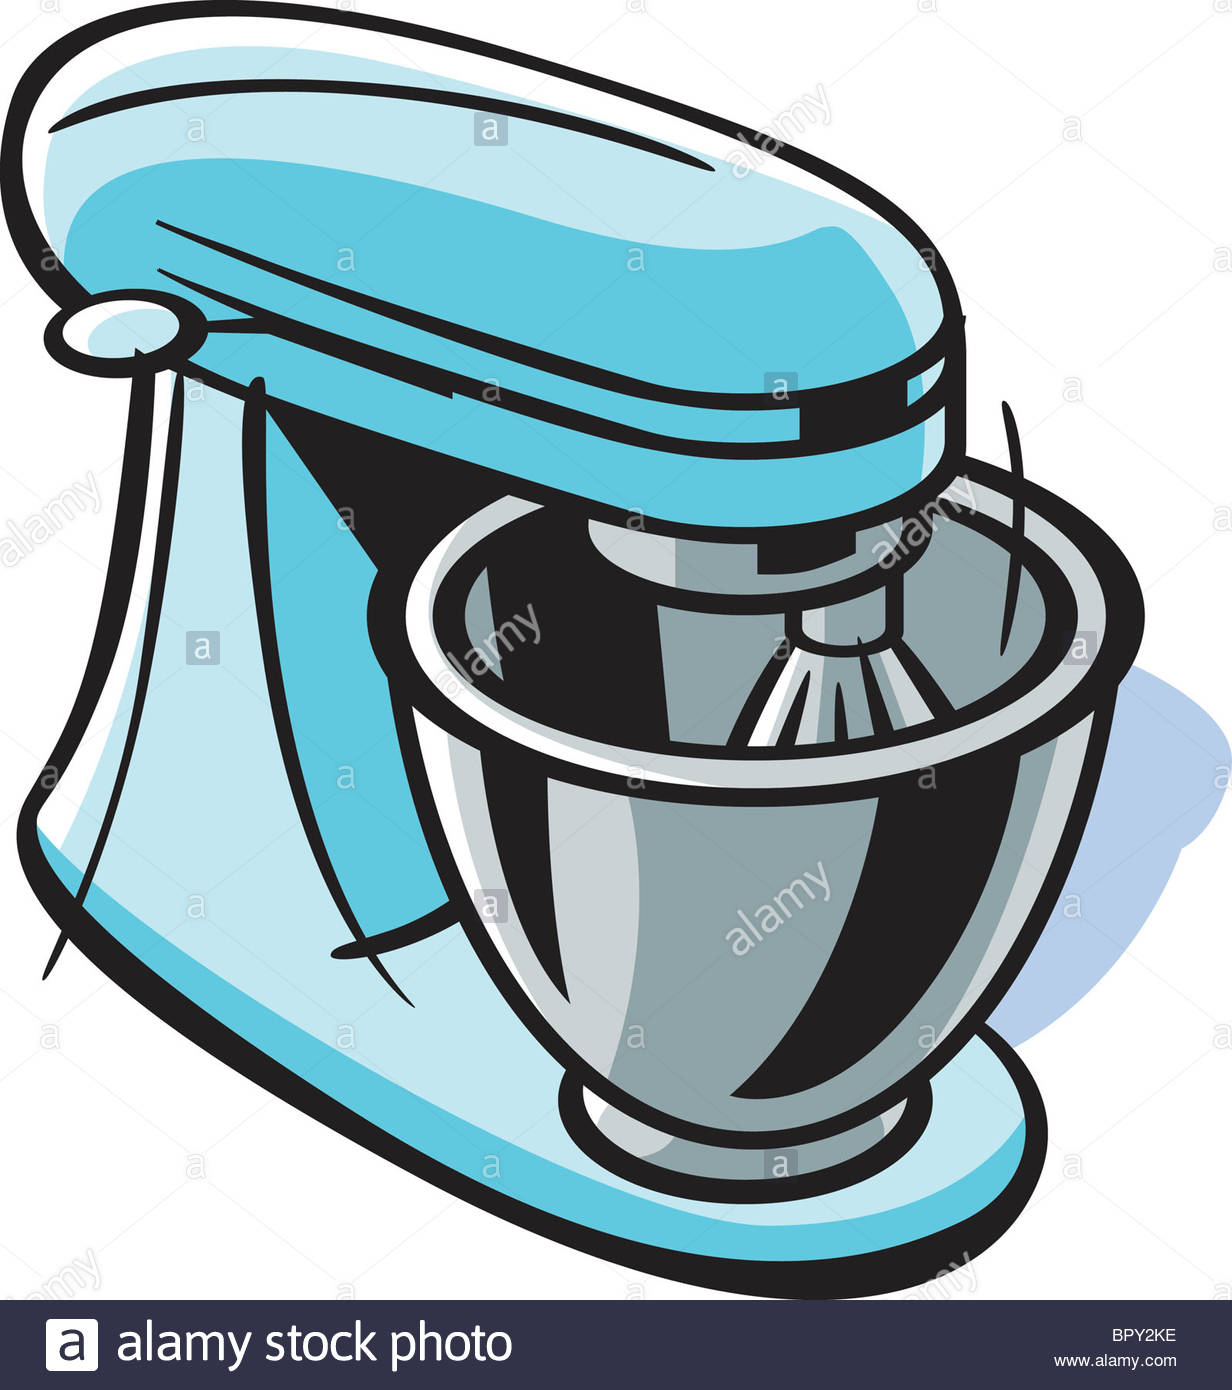 1232x1390 Drawing Of A Stand Mixer Stock Photo, Royalty Free Image 31327618